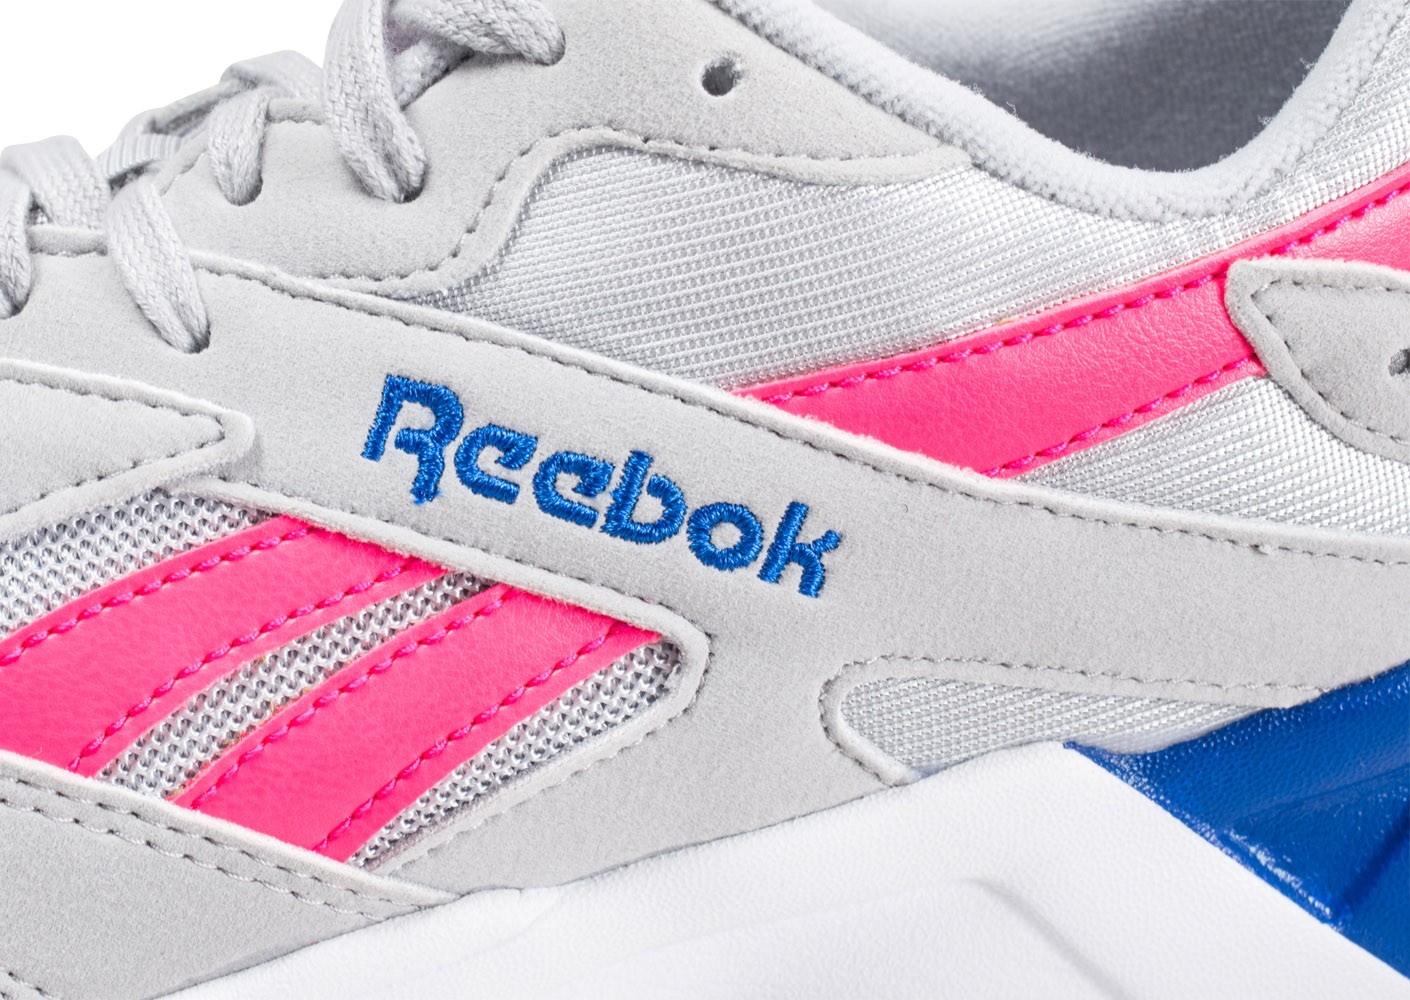 new concept b6819 cf981 Qby7axsw Chaussures Rose Chausport Homme Reebok Grise Baskets Et Aztrek  7xBZn6W